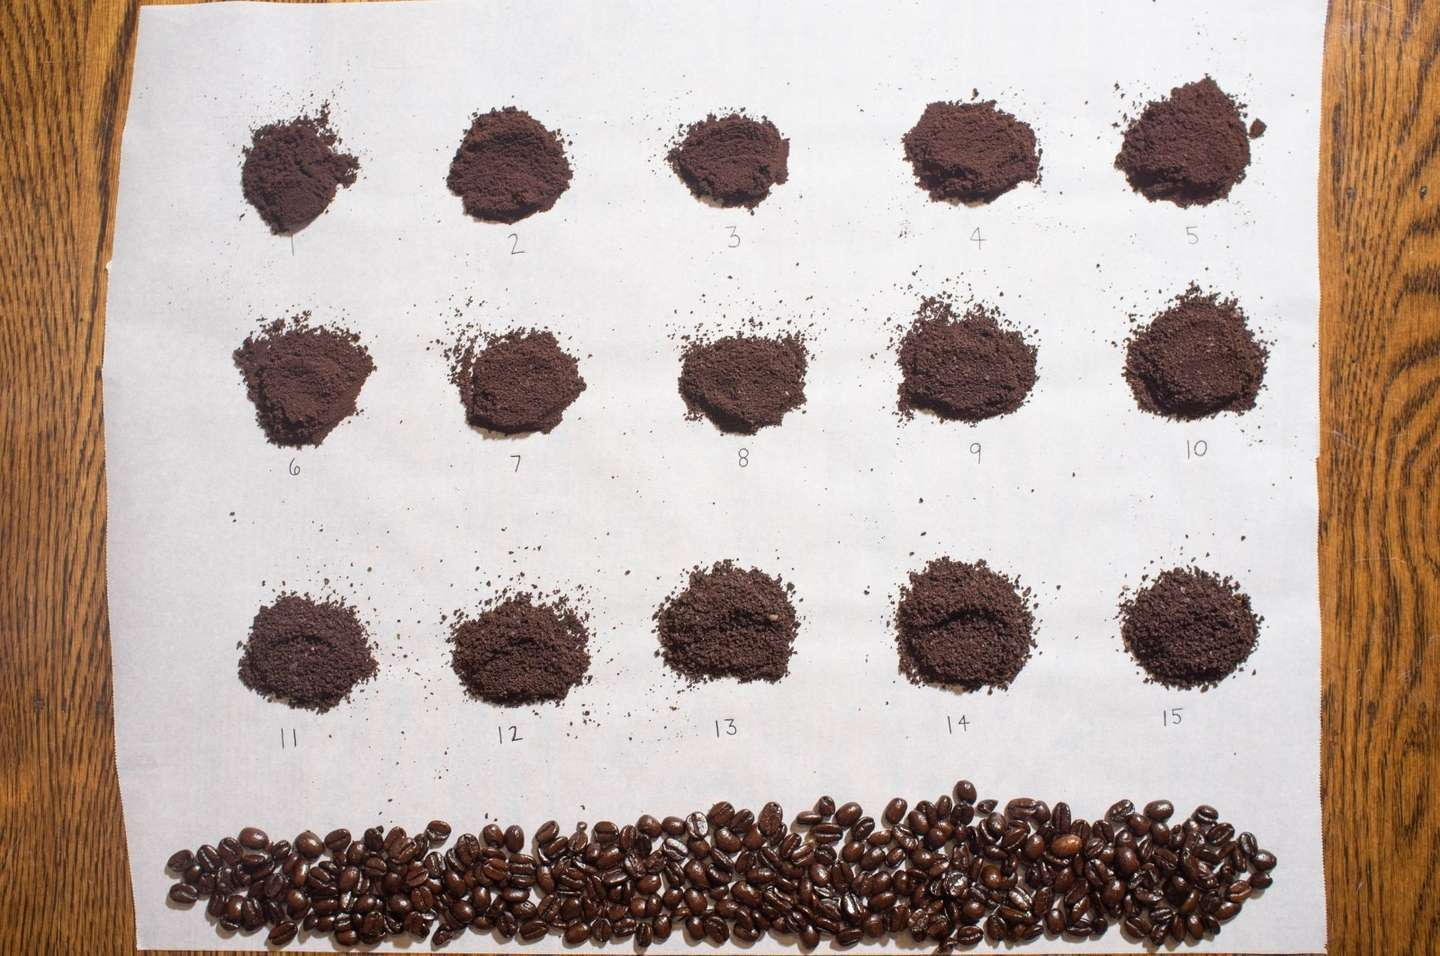 A photo with corresponding chart showing various coffee grinding sizes